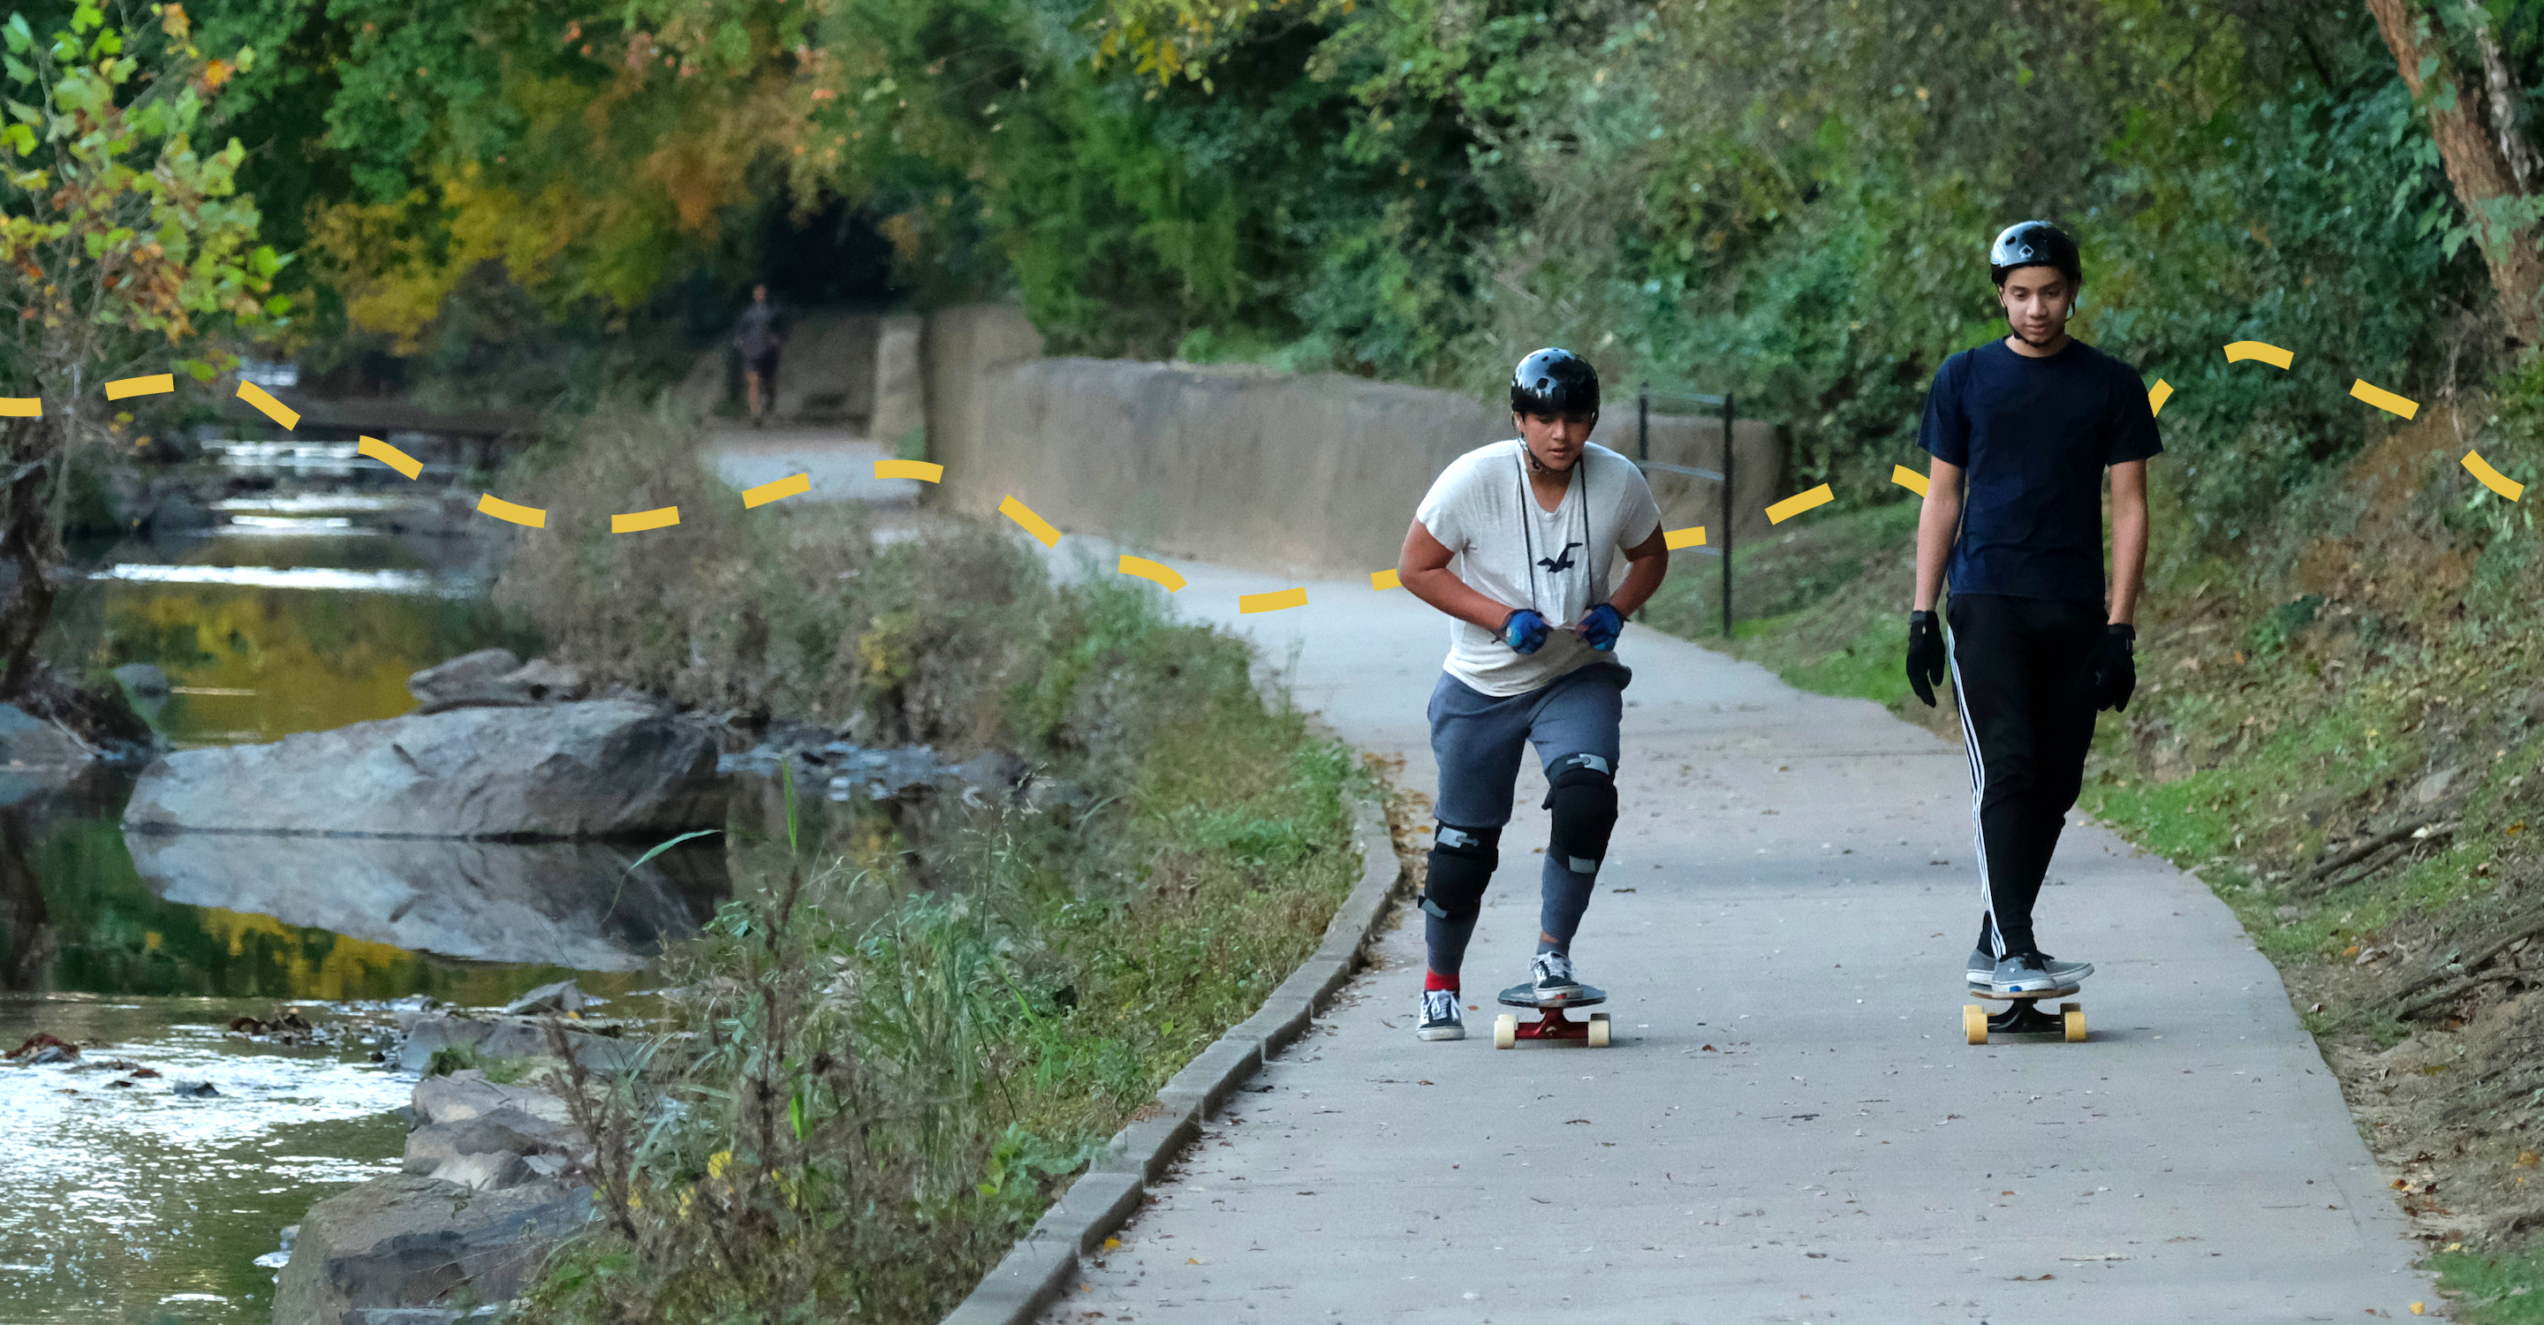 Two young men riding skateboards side by side on a paved path next to a creek.